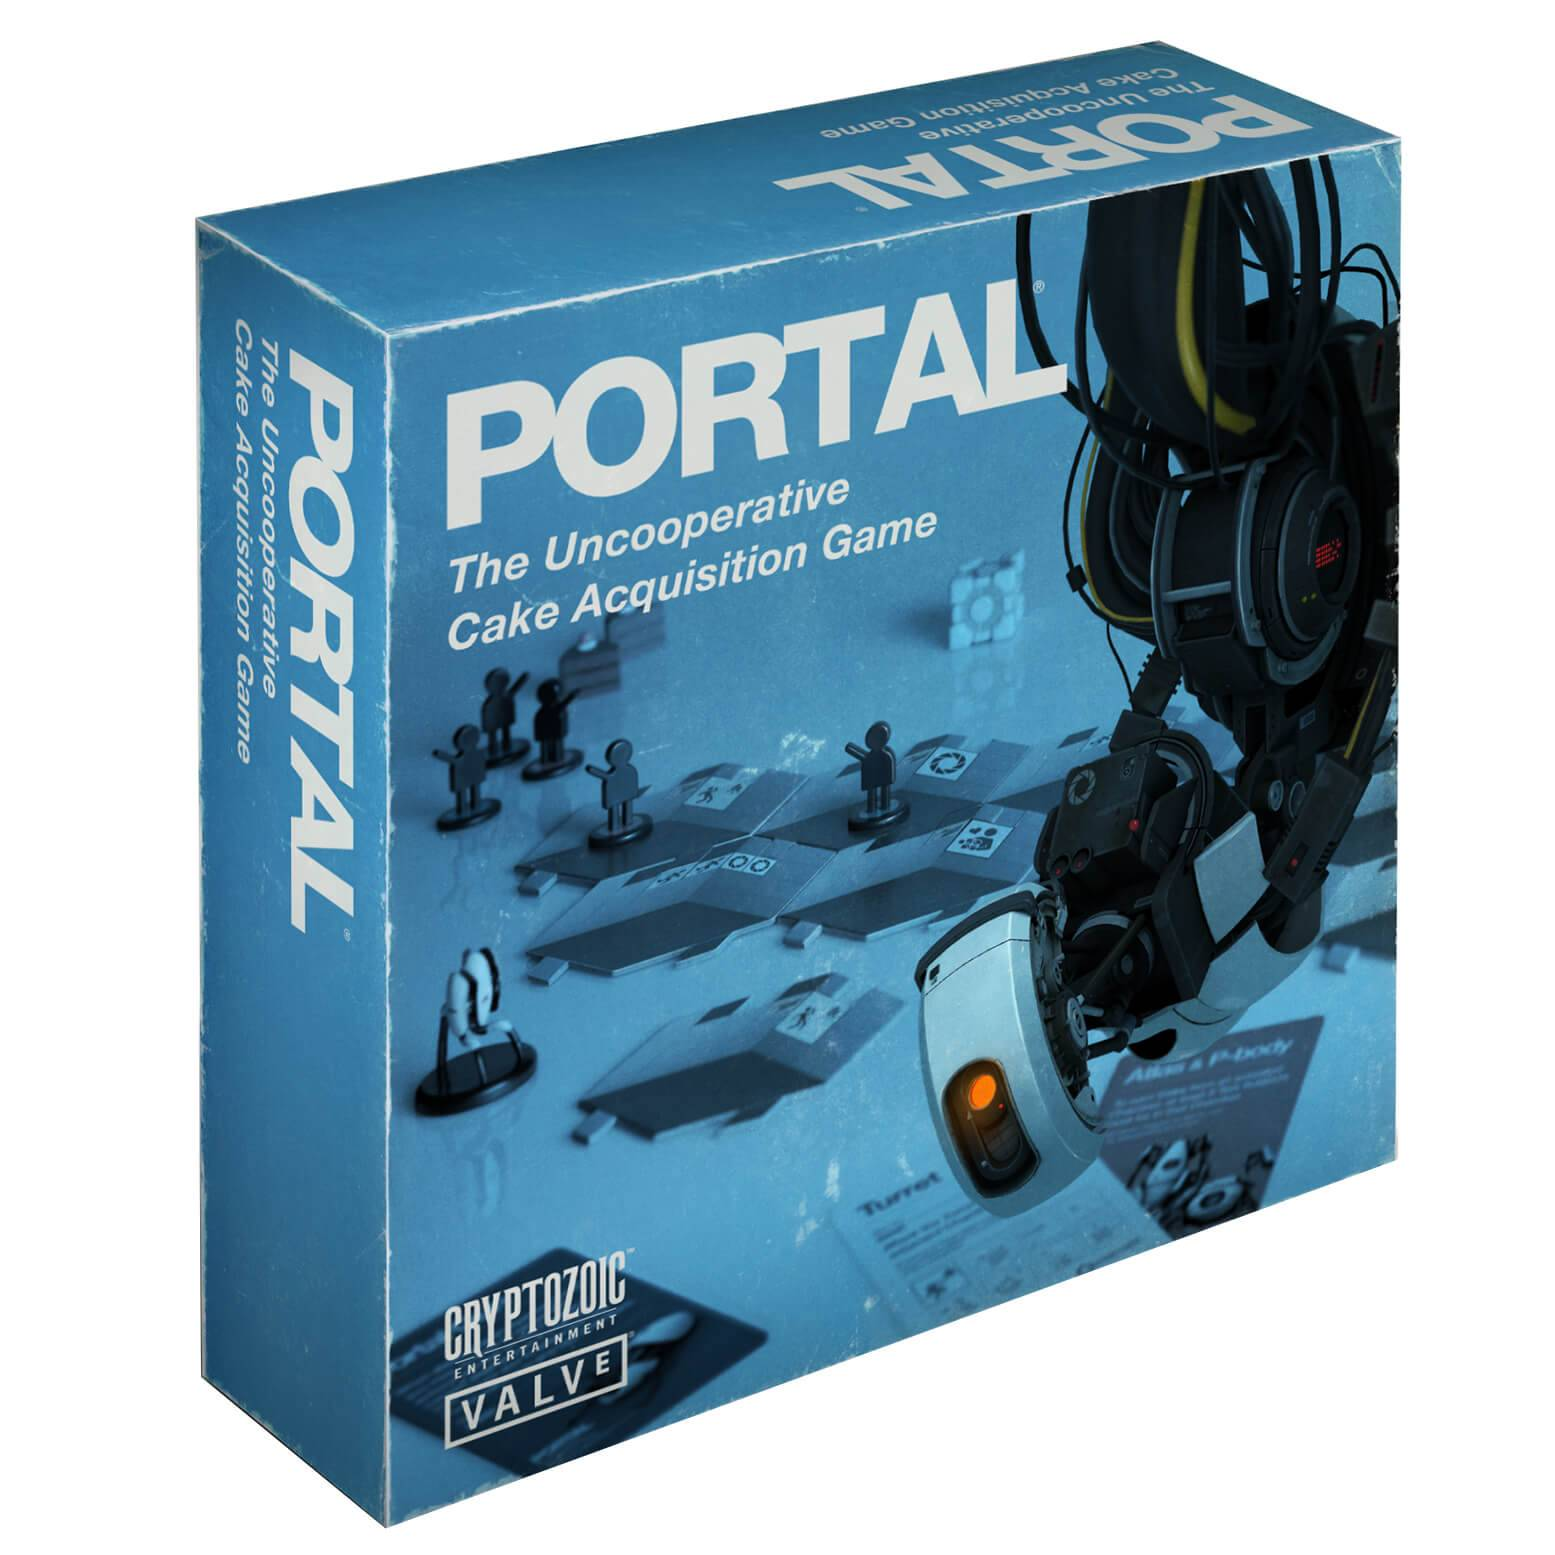 Asmodee Portal: The Uncooperative Cake Acquisition Game